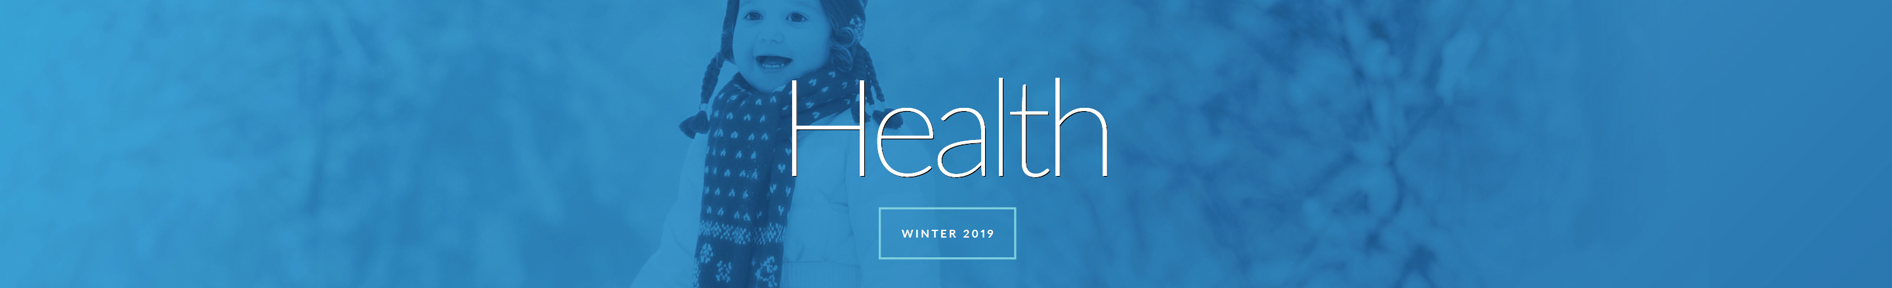 Health Magazine Winter 2019 banner image - blue